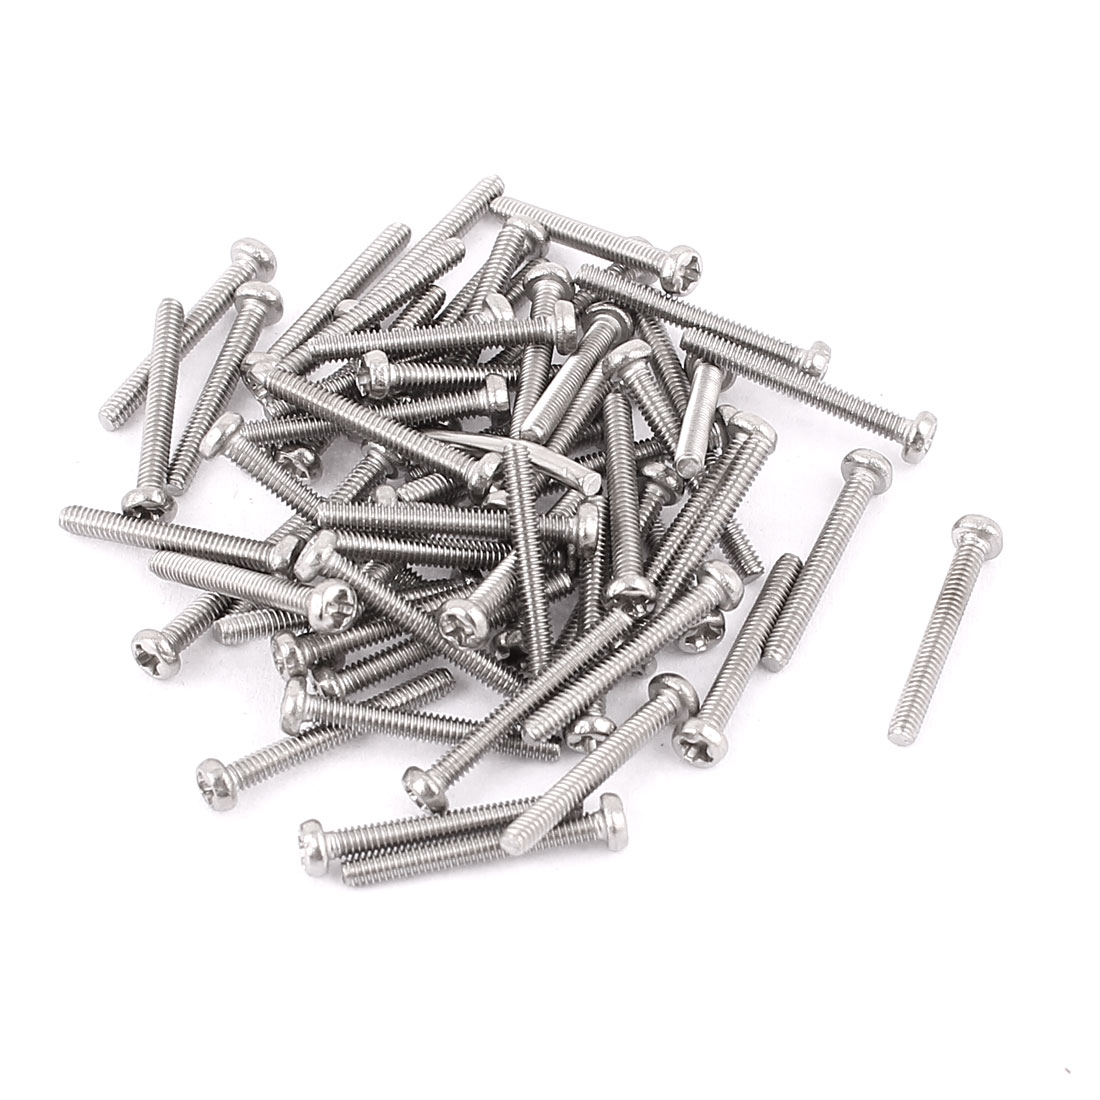 M2 x 15mm 304 Stainless Steel Crosshead Phillips Round Head Screws Bolt 60pcs